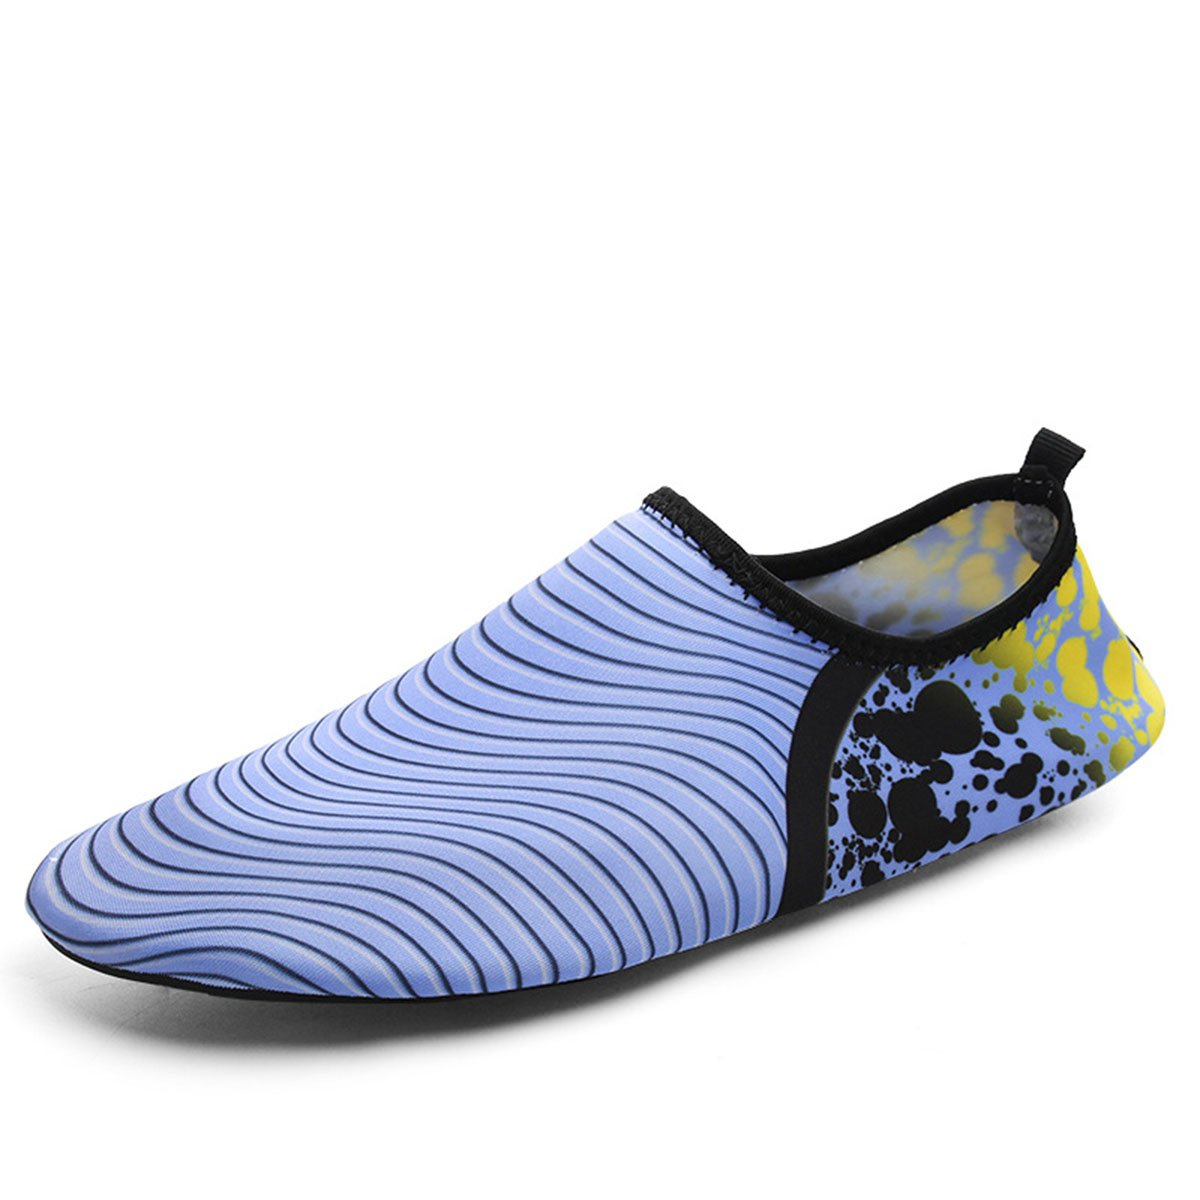 Water Sports Shoes for Men/&Women Barefoot Skin Aqua Shoes for Beach Pool Surf Yoga Exercise